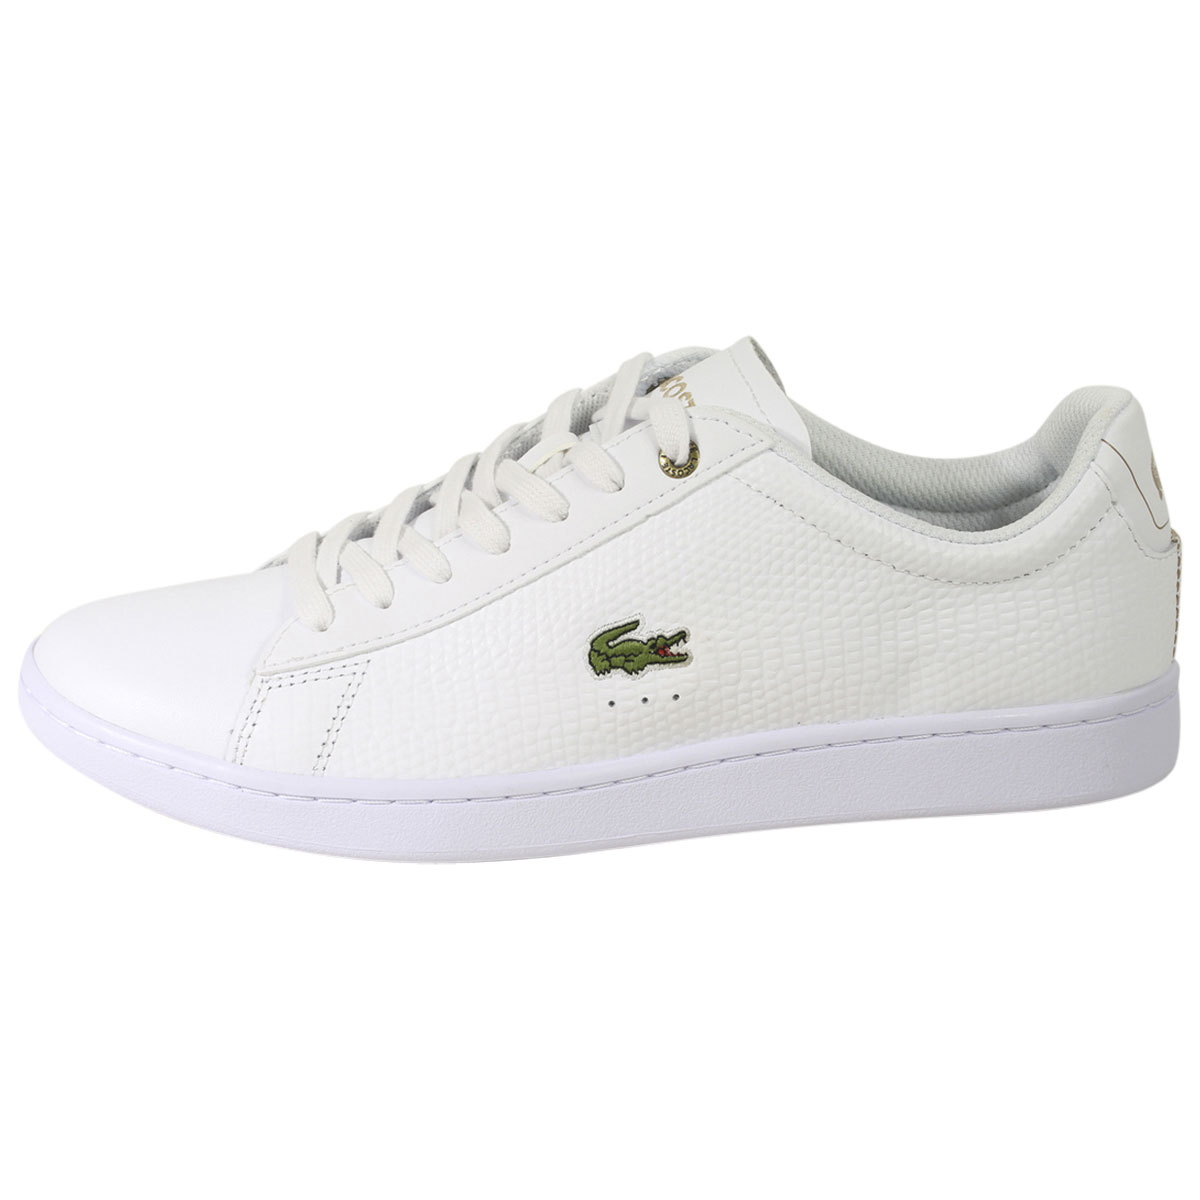 c5990dc9876a83 Lacoste Men s Carnaby-EVO-118 Trainers Sneakers Shoes